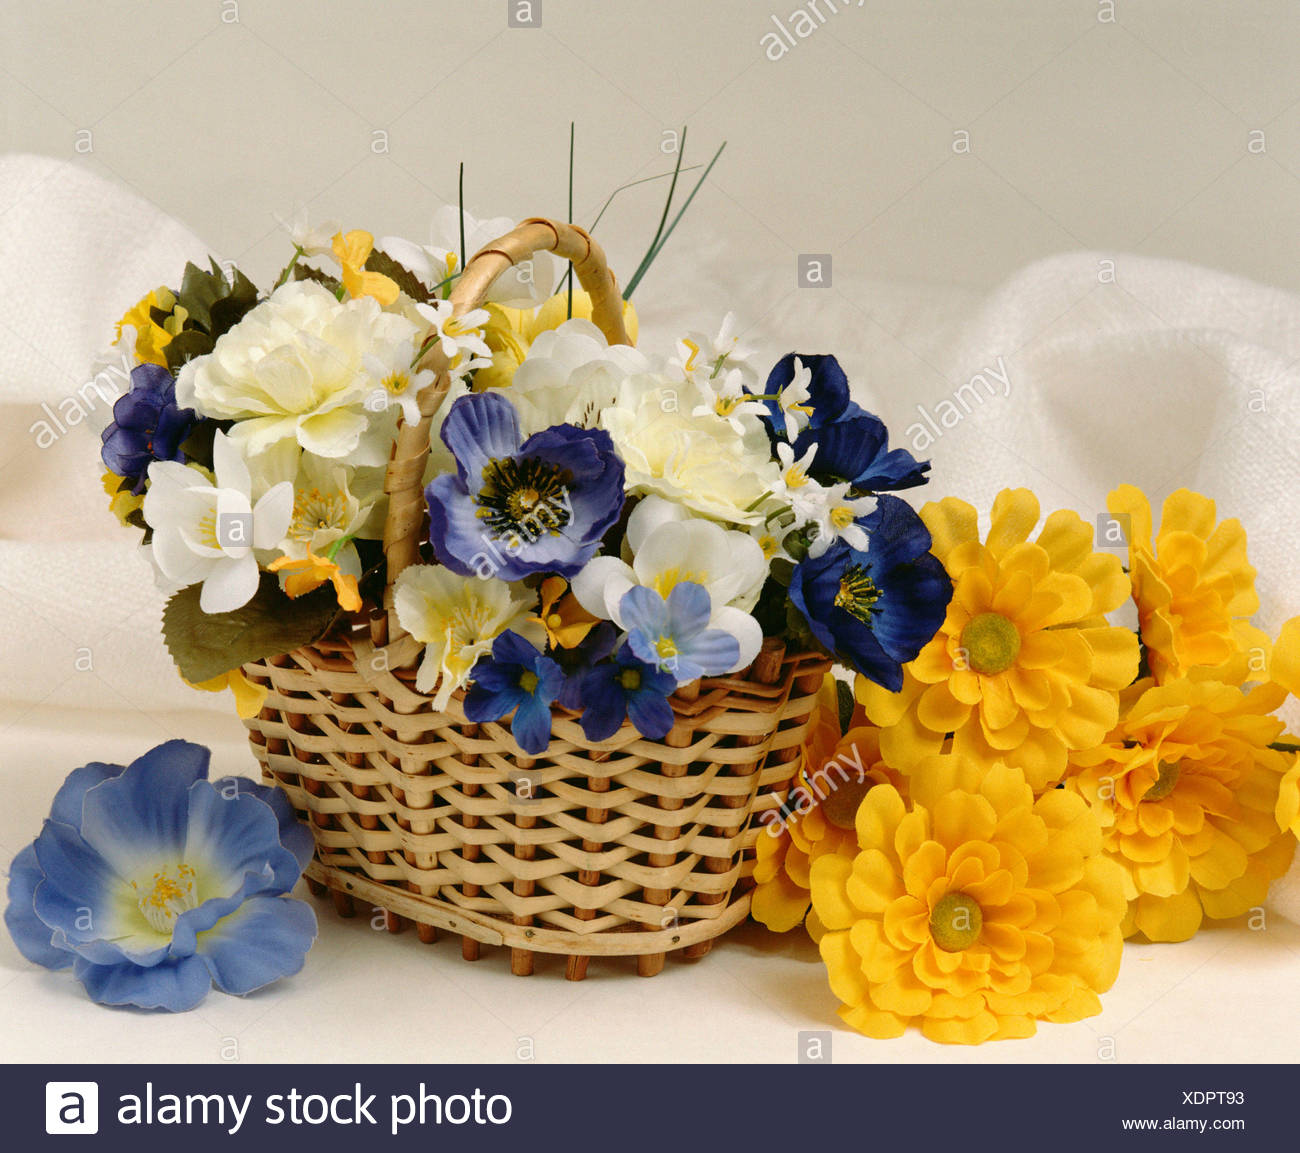 Bouquet of silk flowers stock photo 283858431 alamy bouquet of silk flowers izmirmasajfo